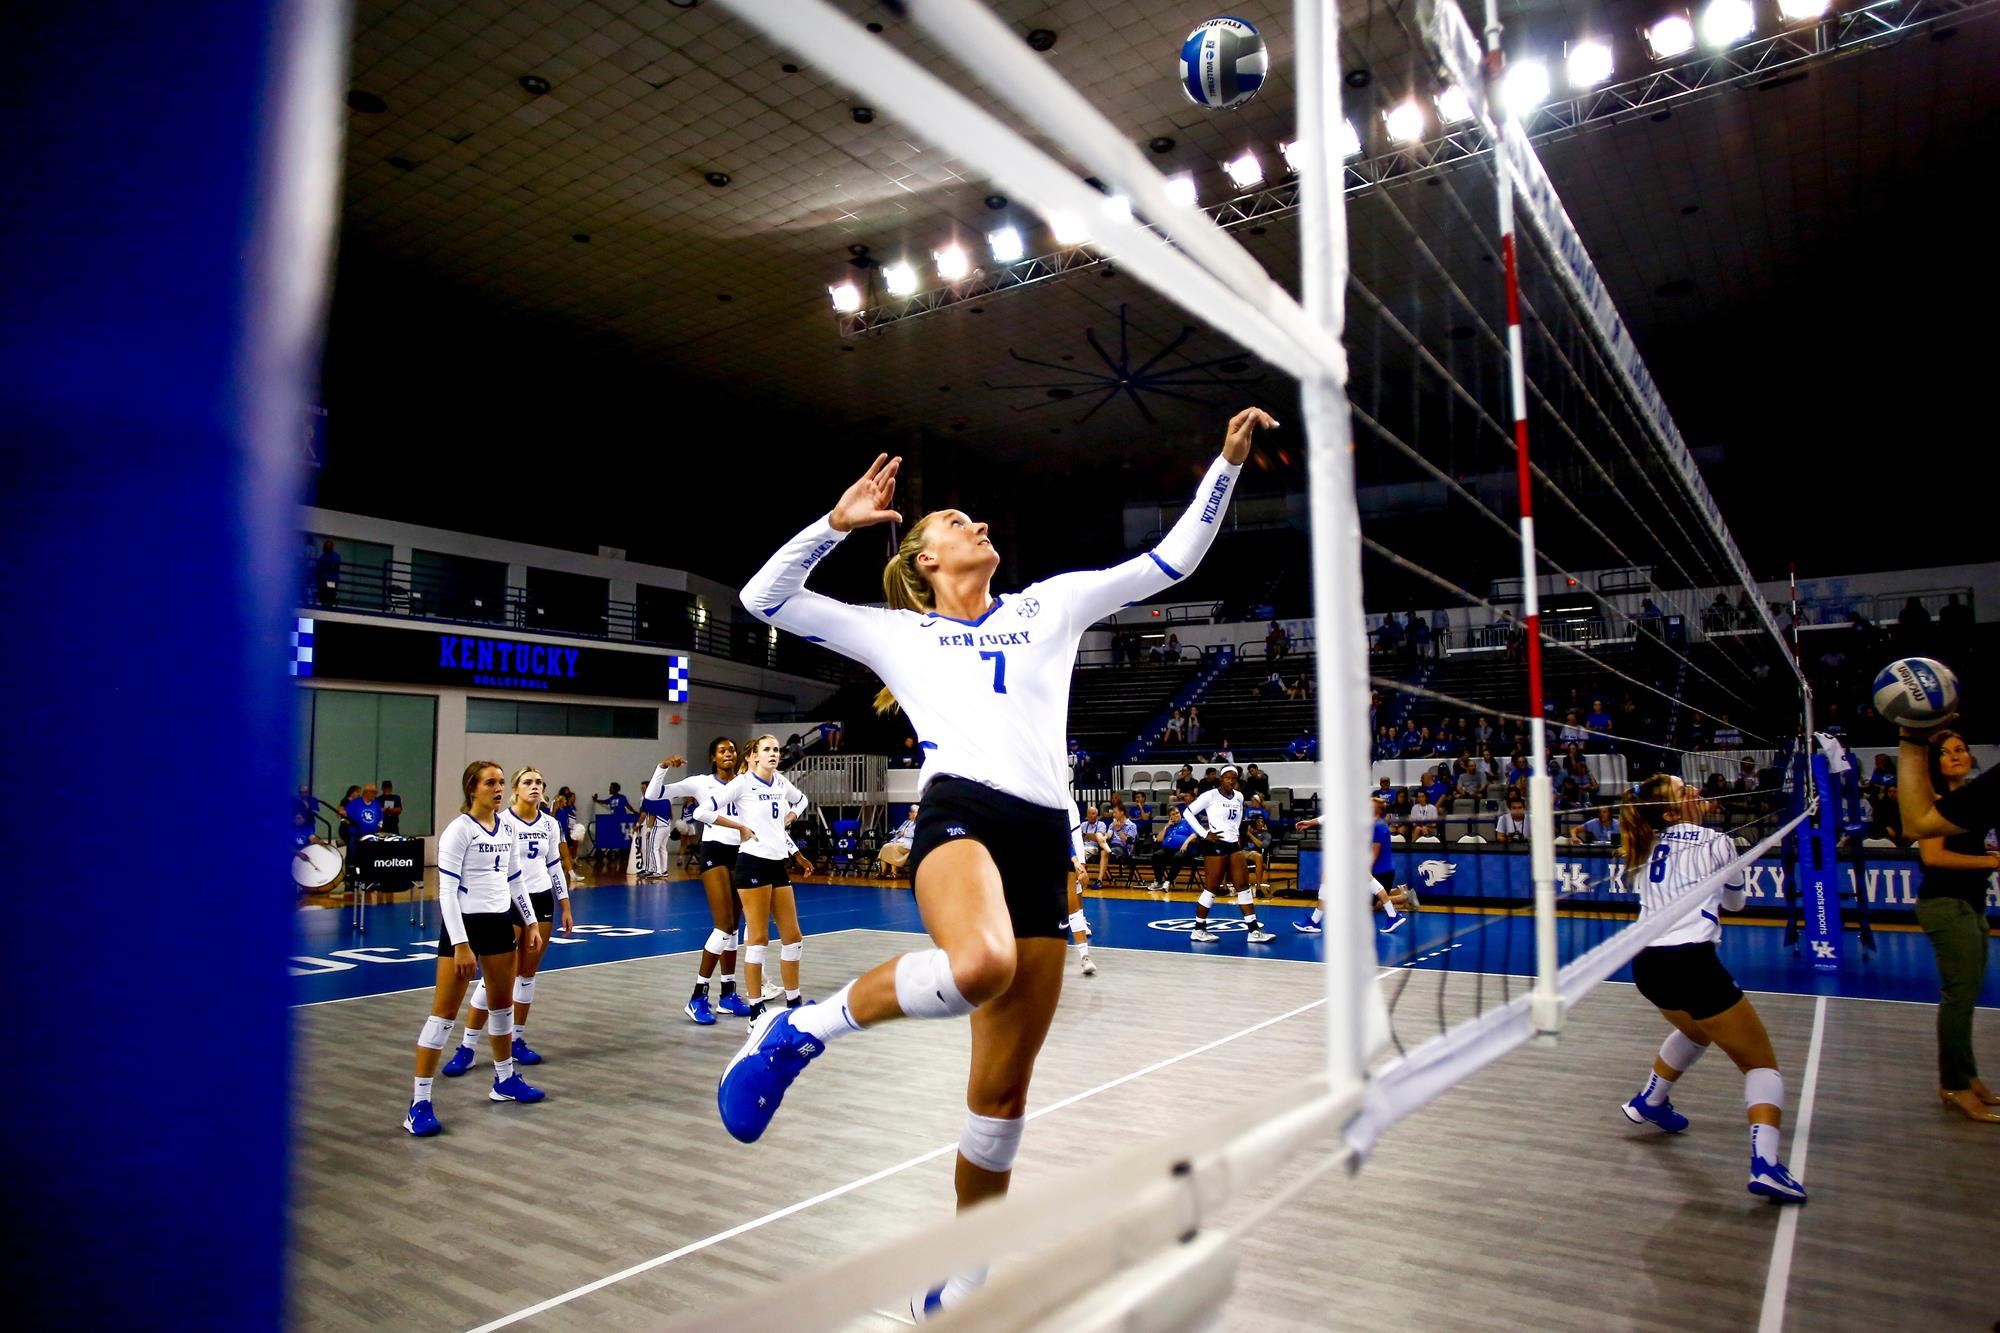 Leah Meyer Volleyball University Of Kentucky Athletics